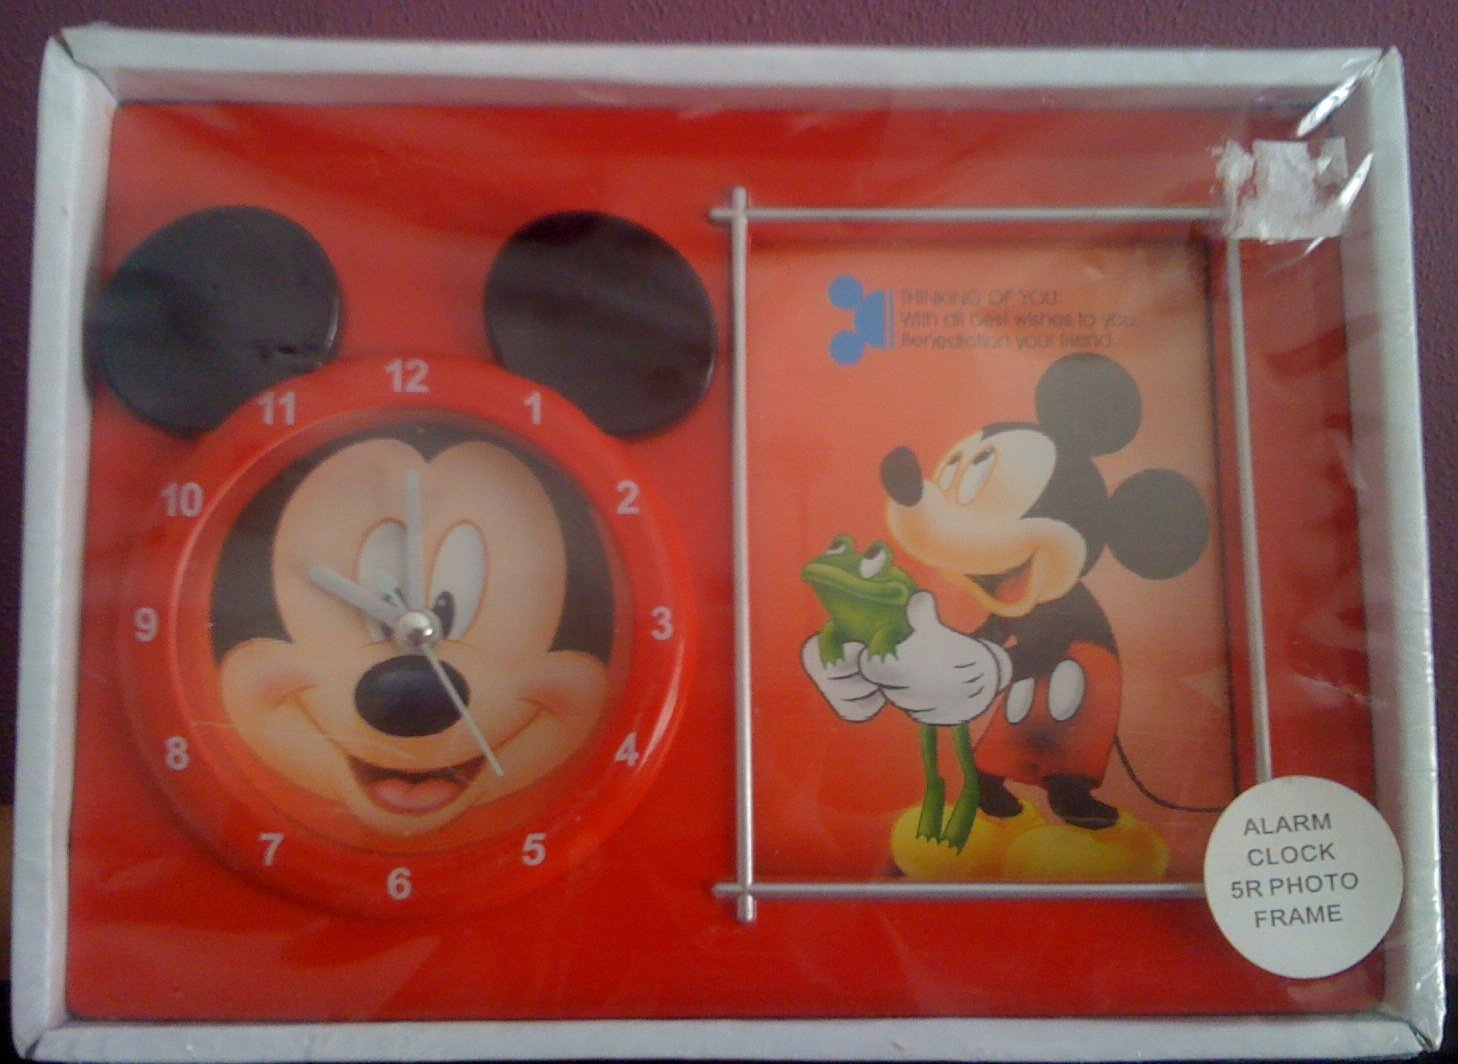 Mickey Mouse Clock + Photo Frame - 05